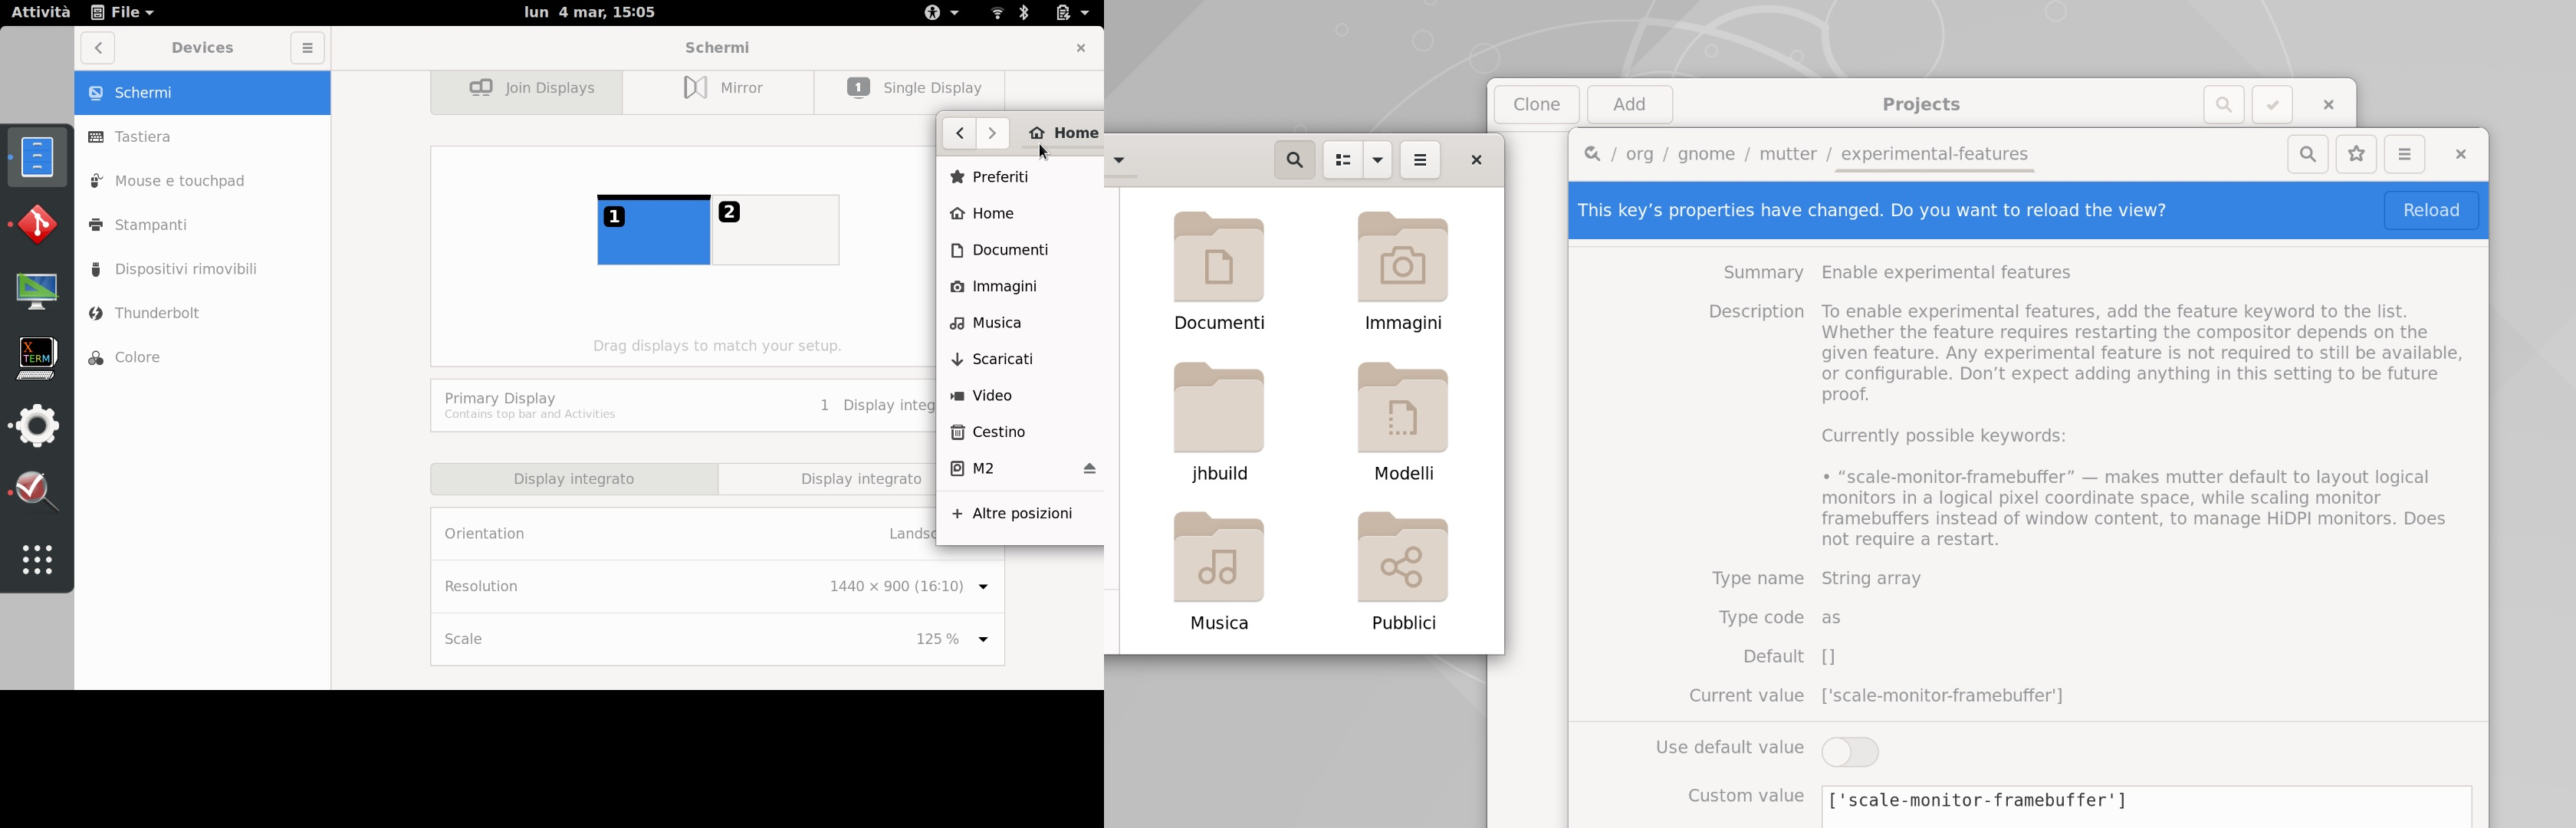 GNOME 3 32 Desktop Environment to Feature Fractional Scaling